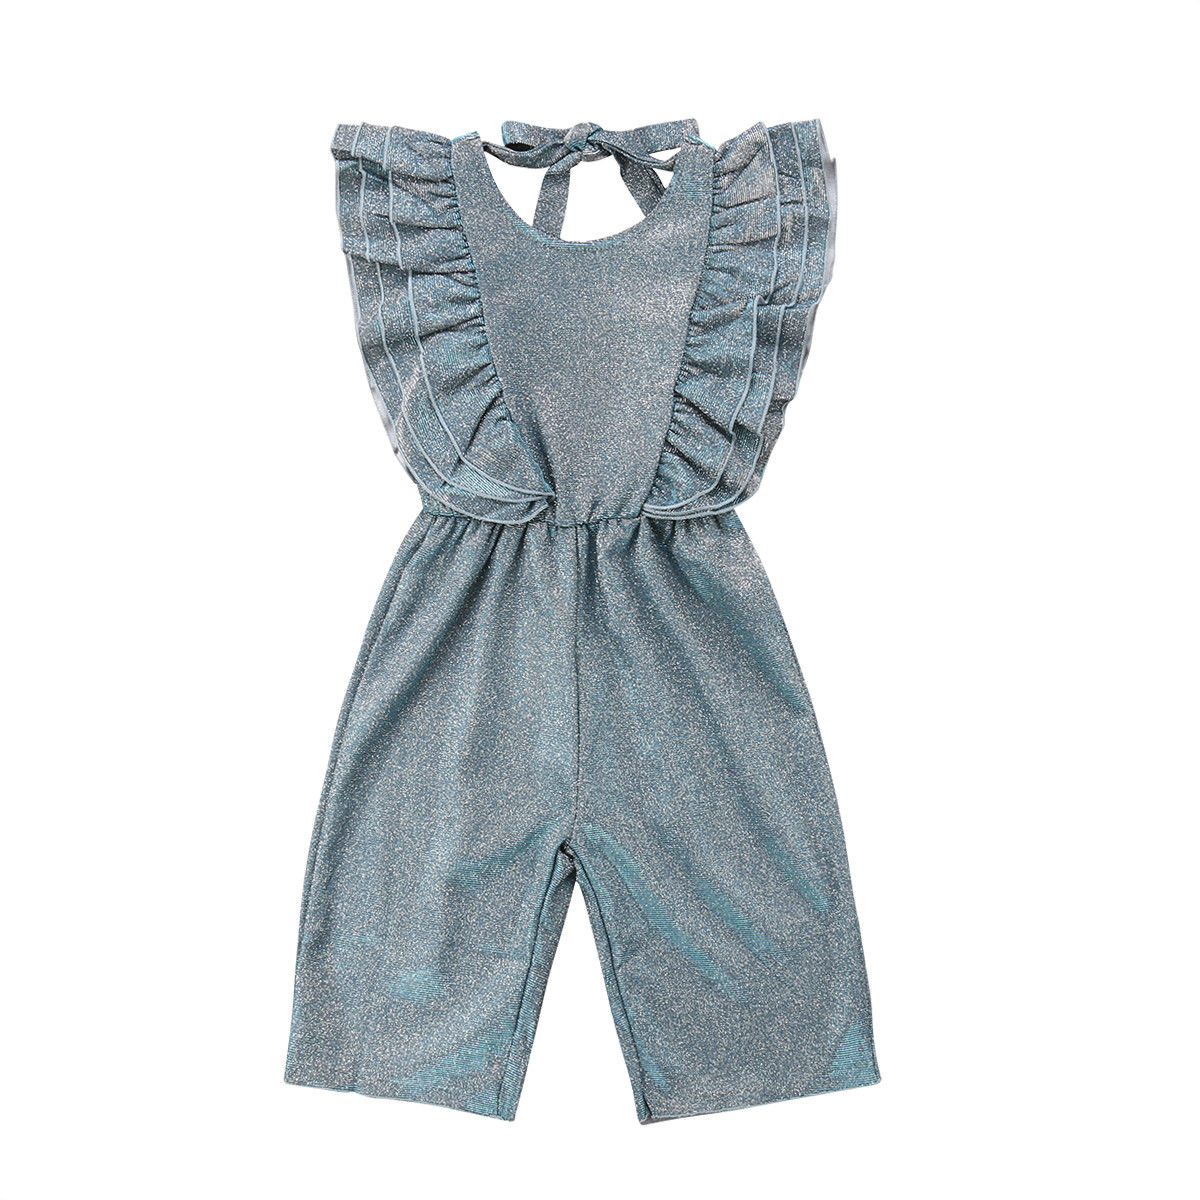 Baby Girl Kids Casual Ruffle Sleeveless Sequin Romper Jumpsuit Summer One Piece Clothes